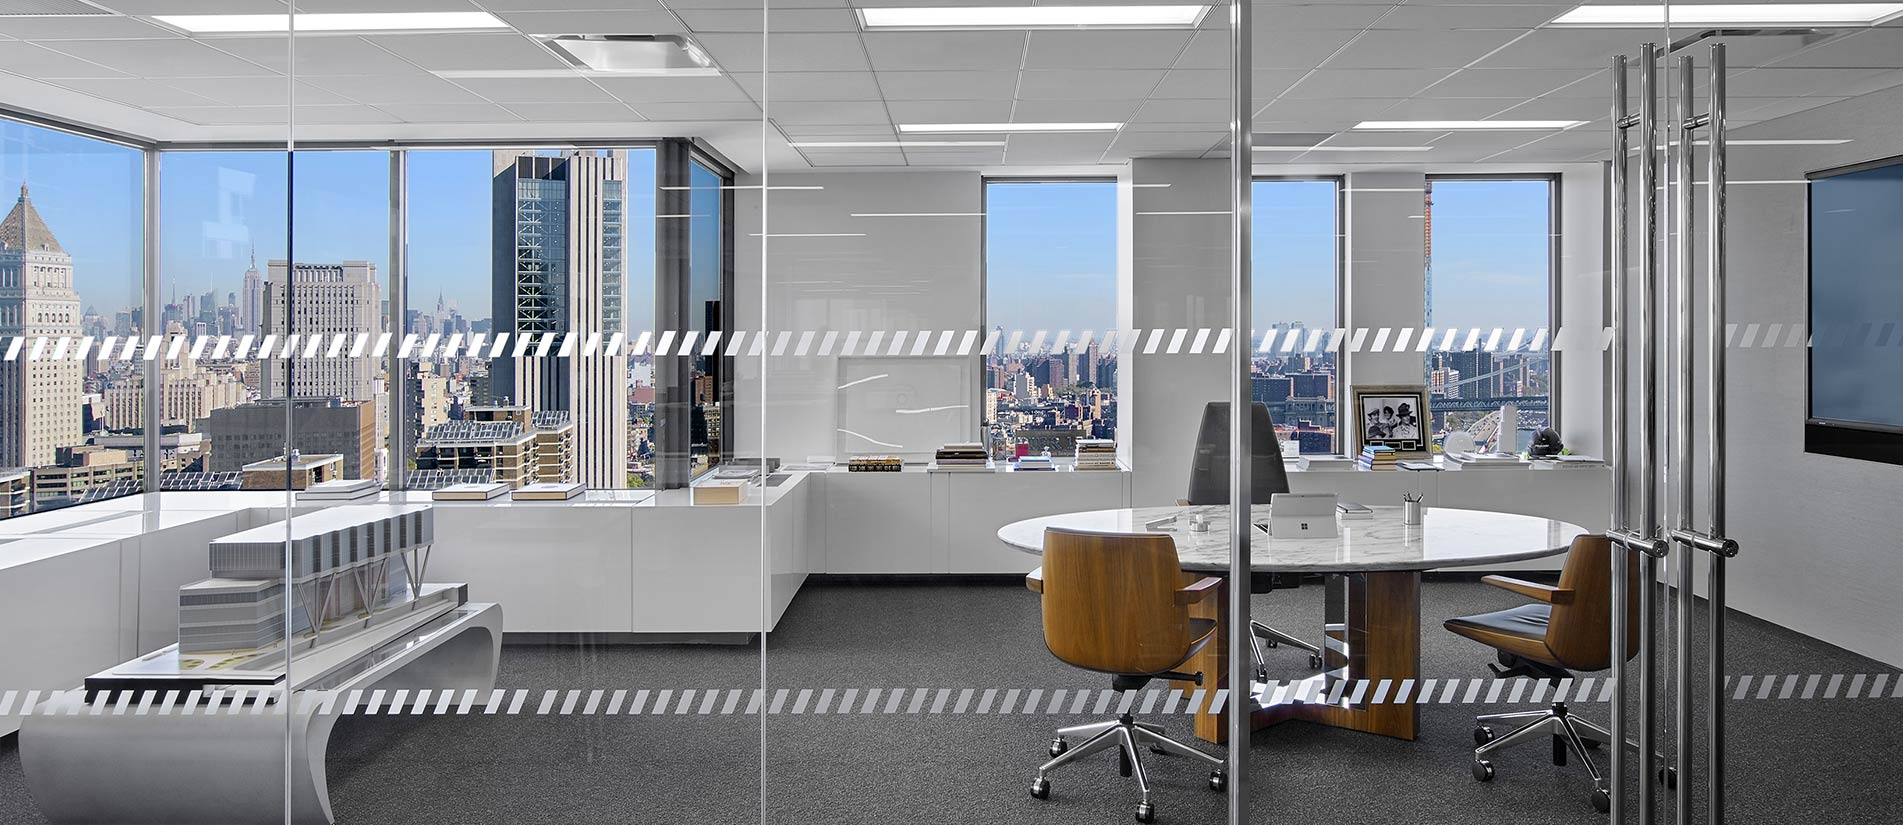 Glass wall panels create a large office front system with natural light